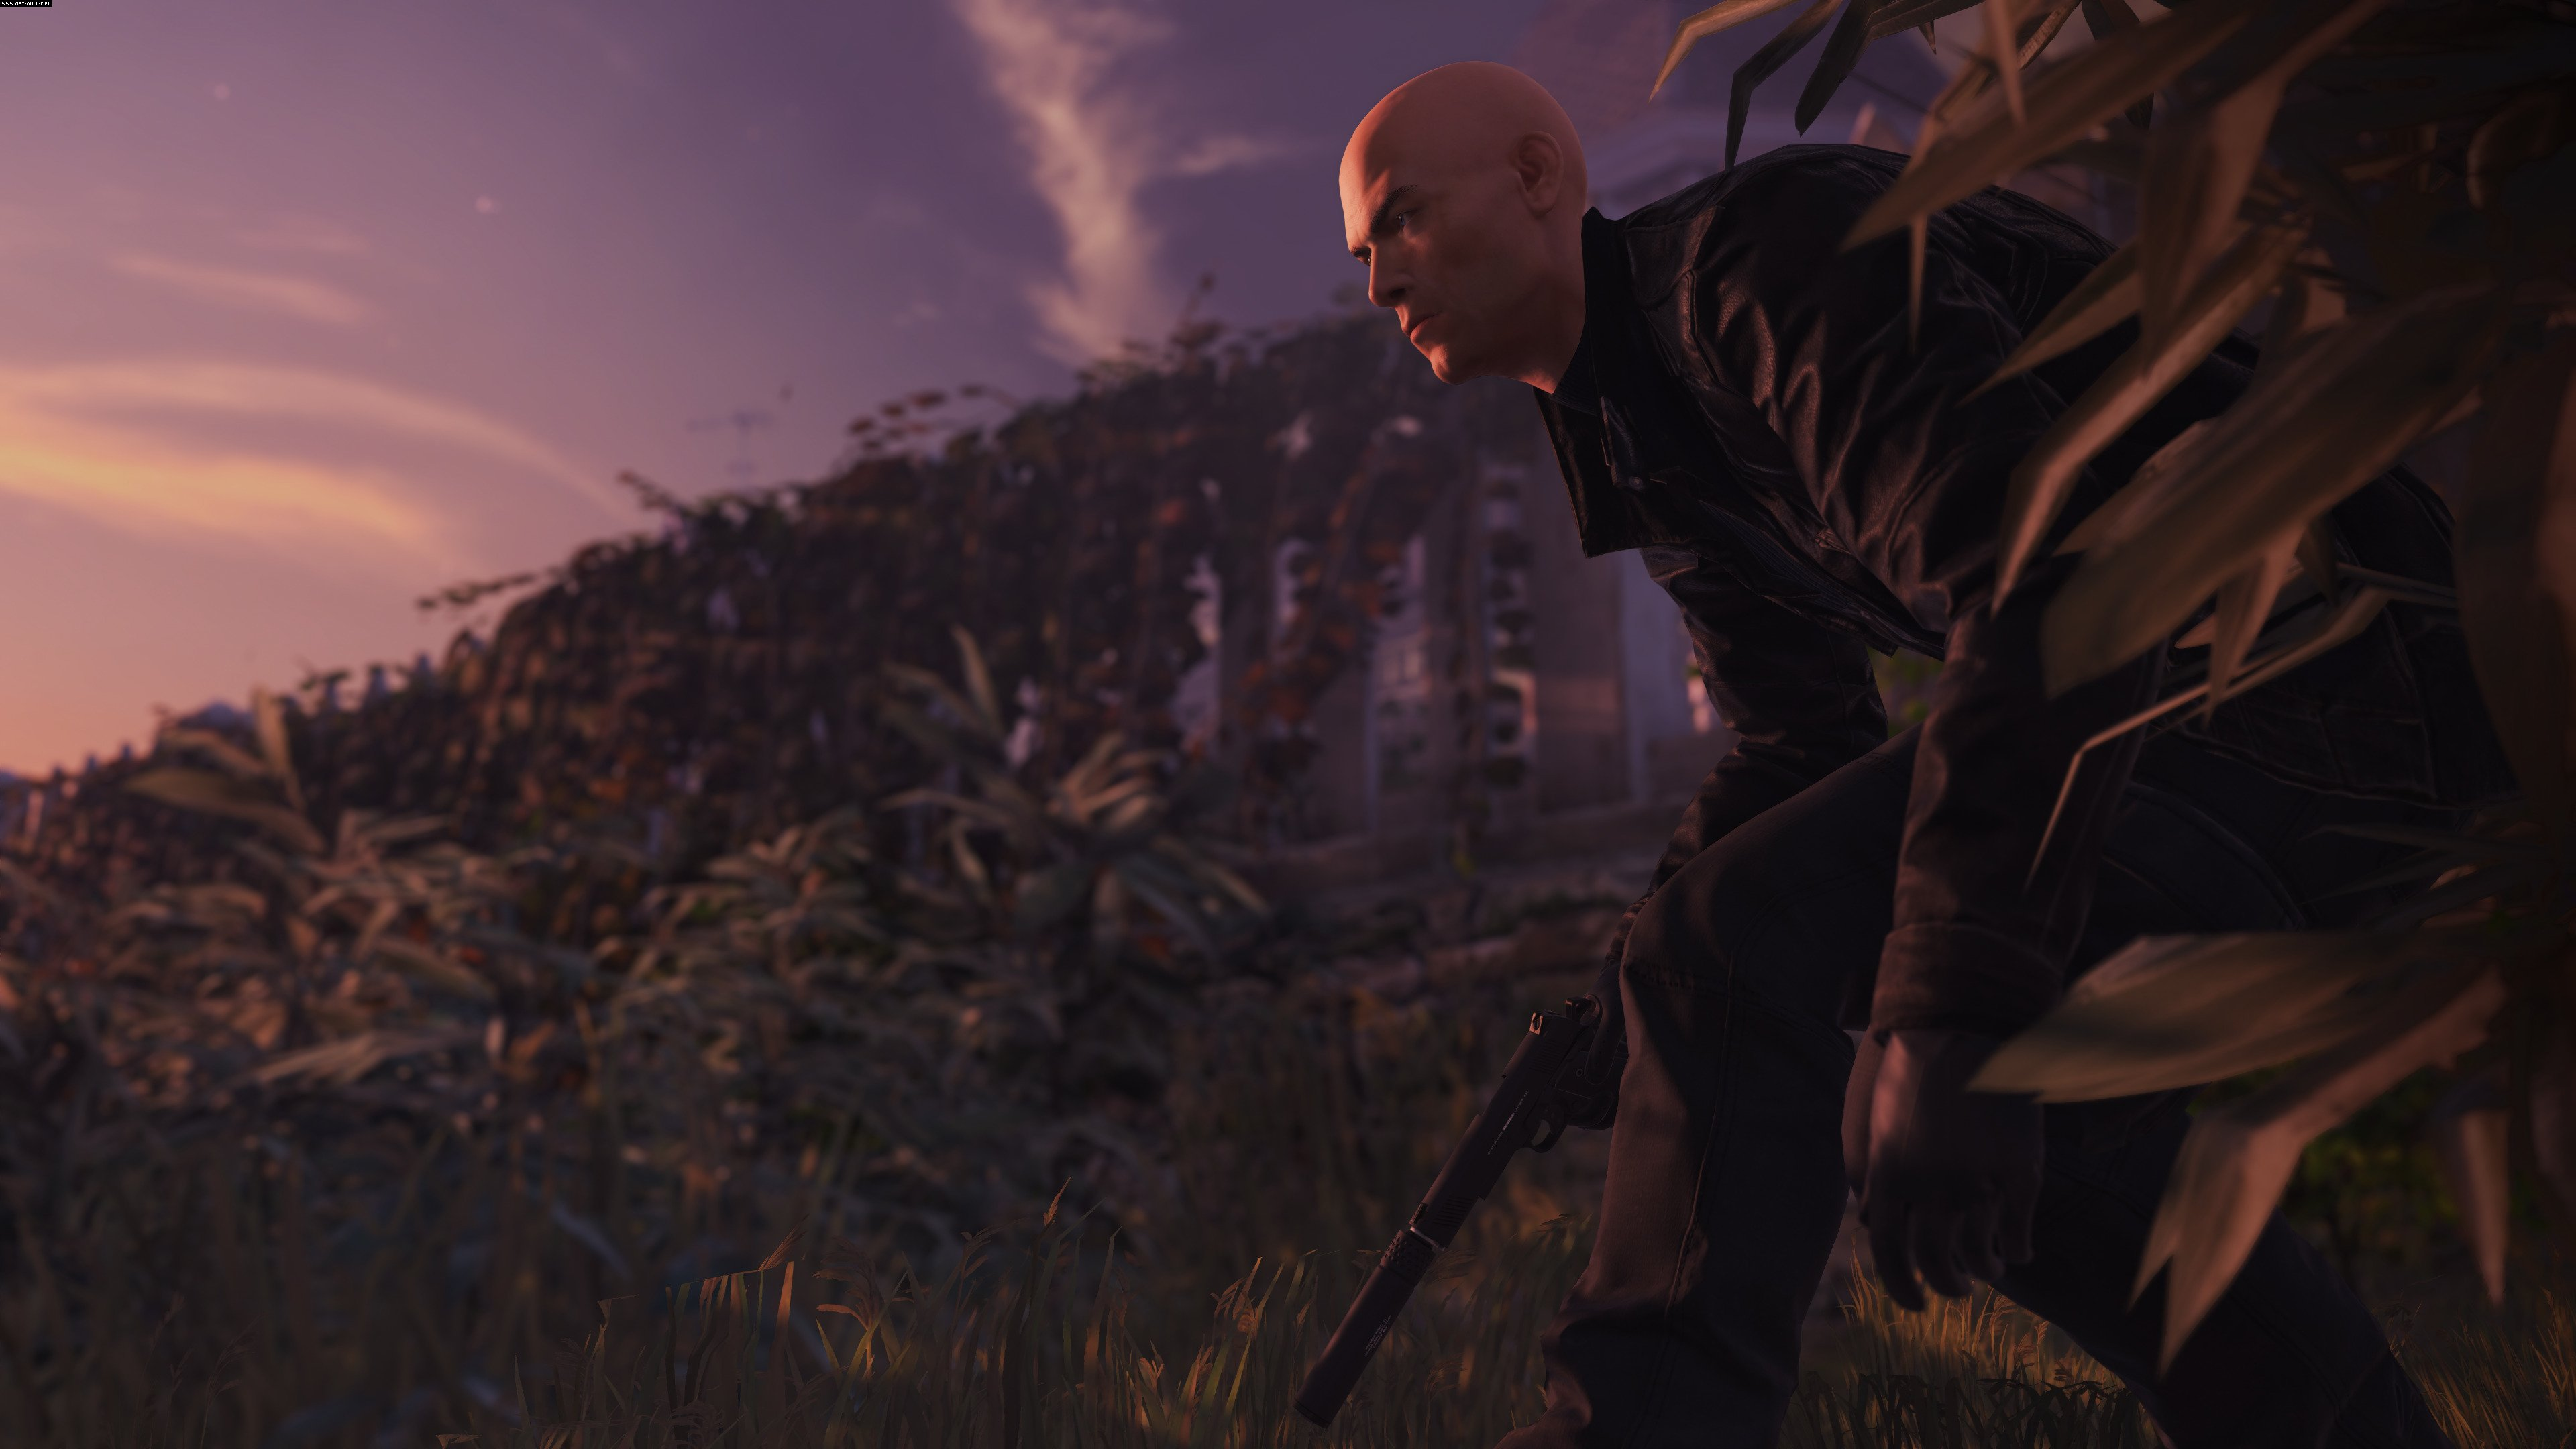 Hitman 2 PC, PS4, XONE Games Image 20/26, IO Interactive, Warner Bros. Interactive Entertainment